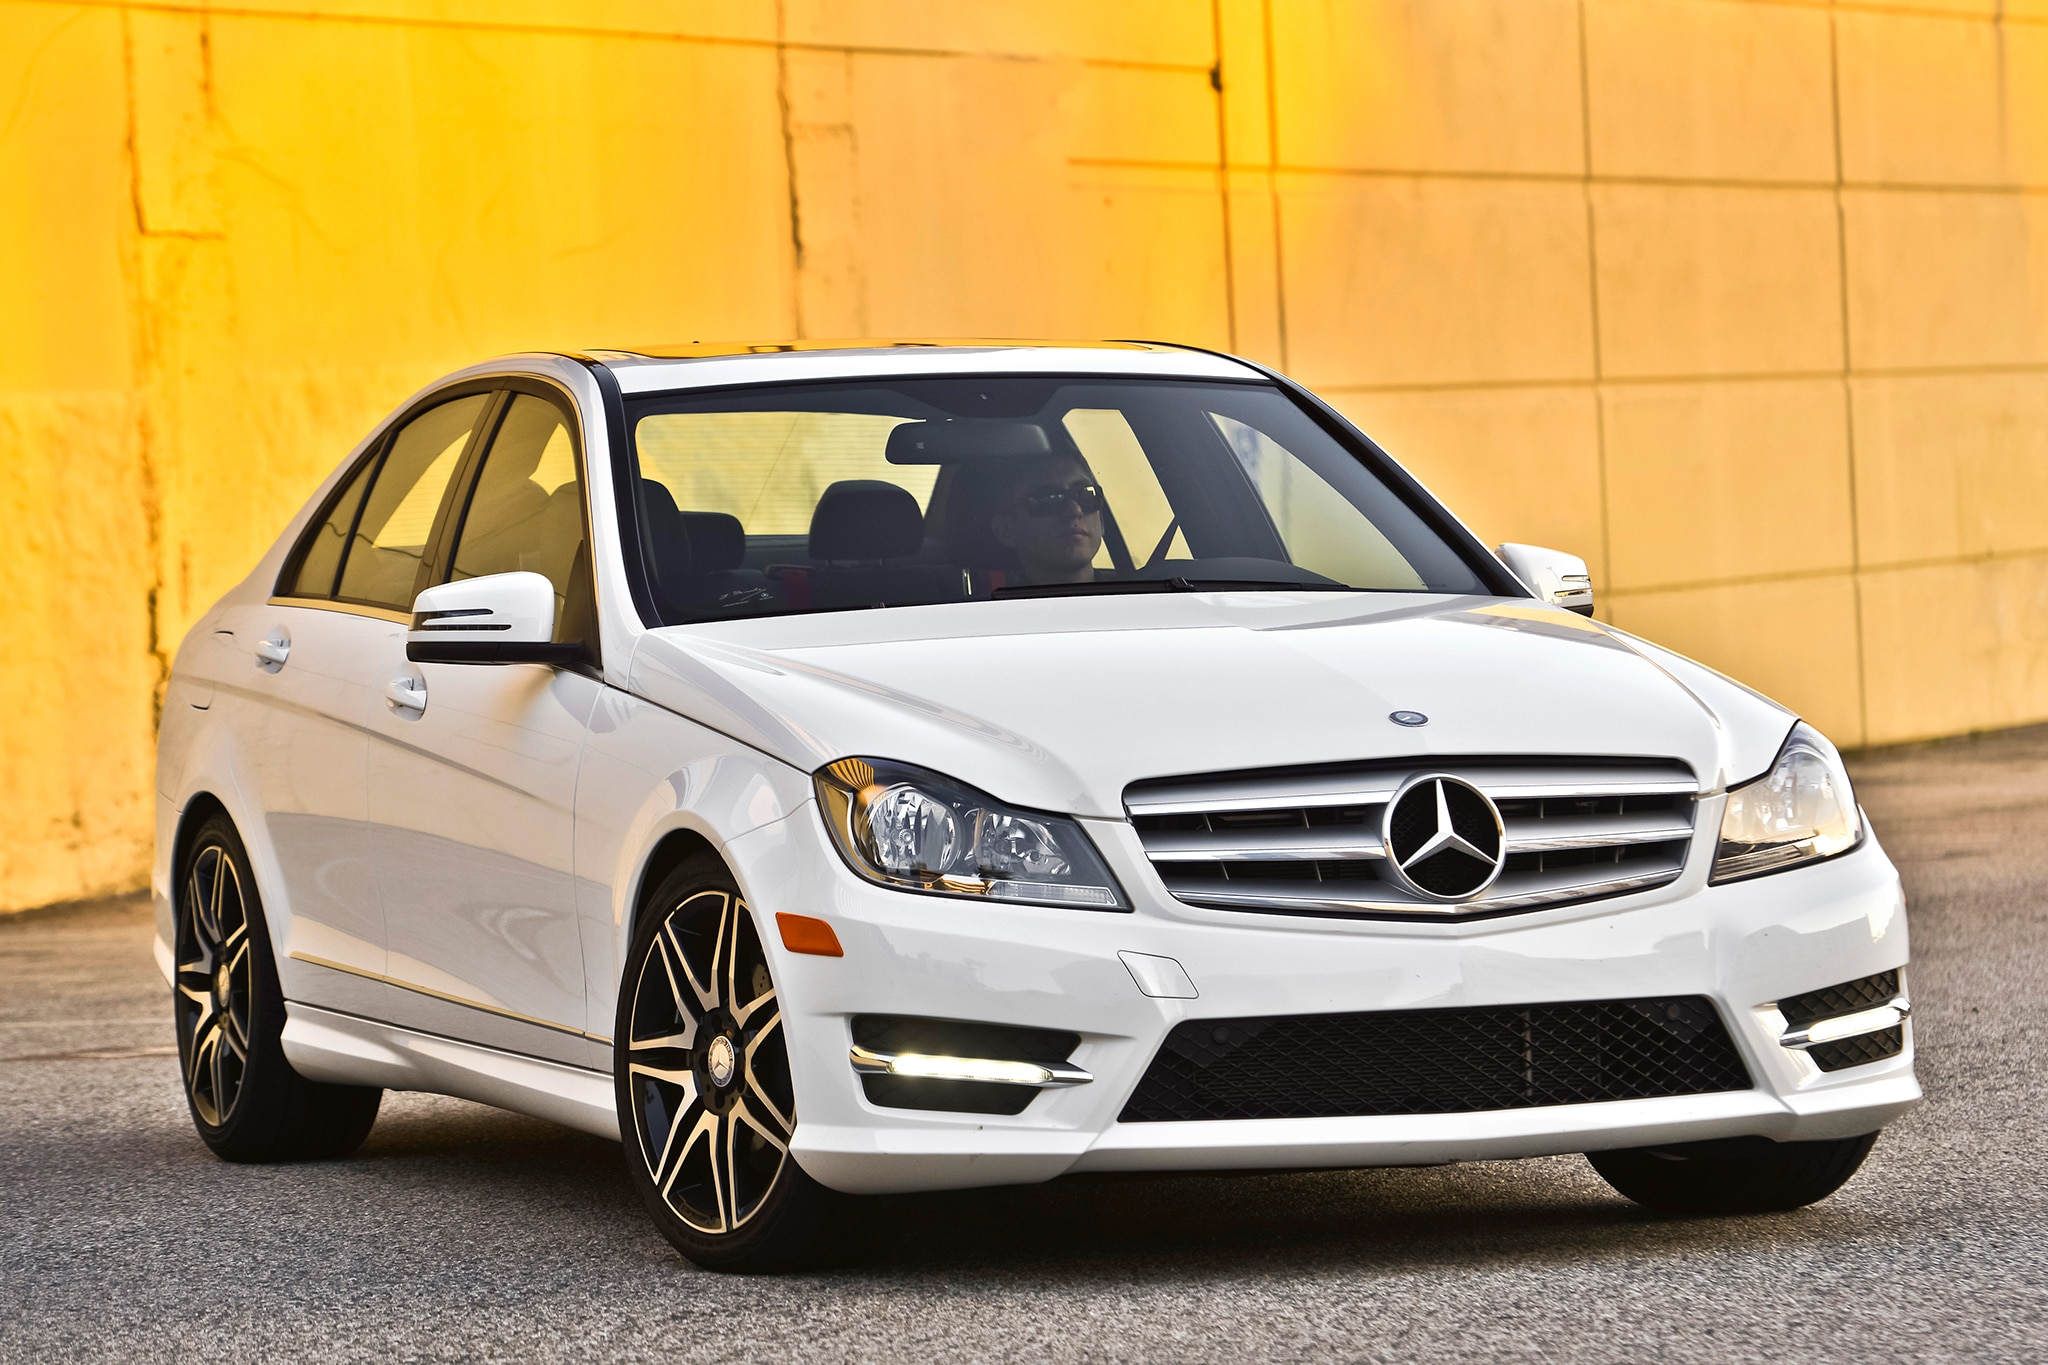 mercedes c300 mercedes benz c300 toupeenseen. Black Bedroom Furniture Sets. Home Design Ideas